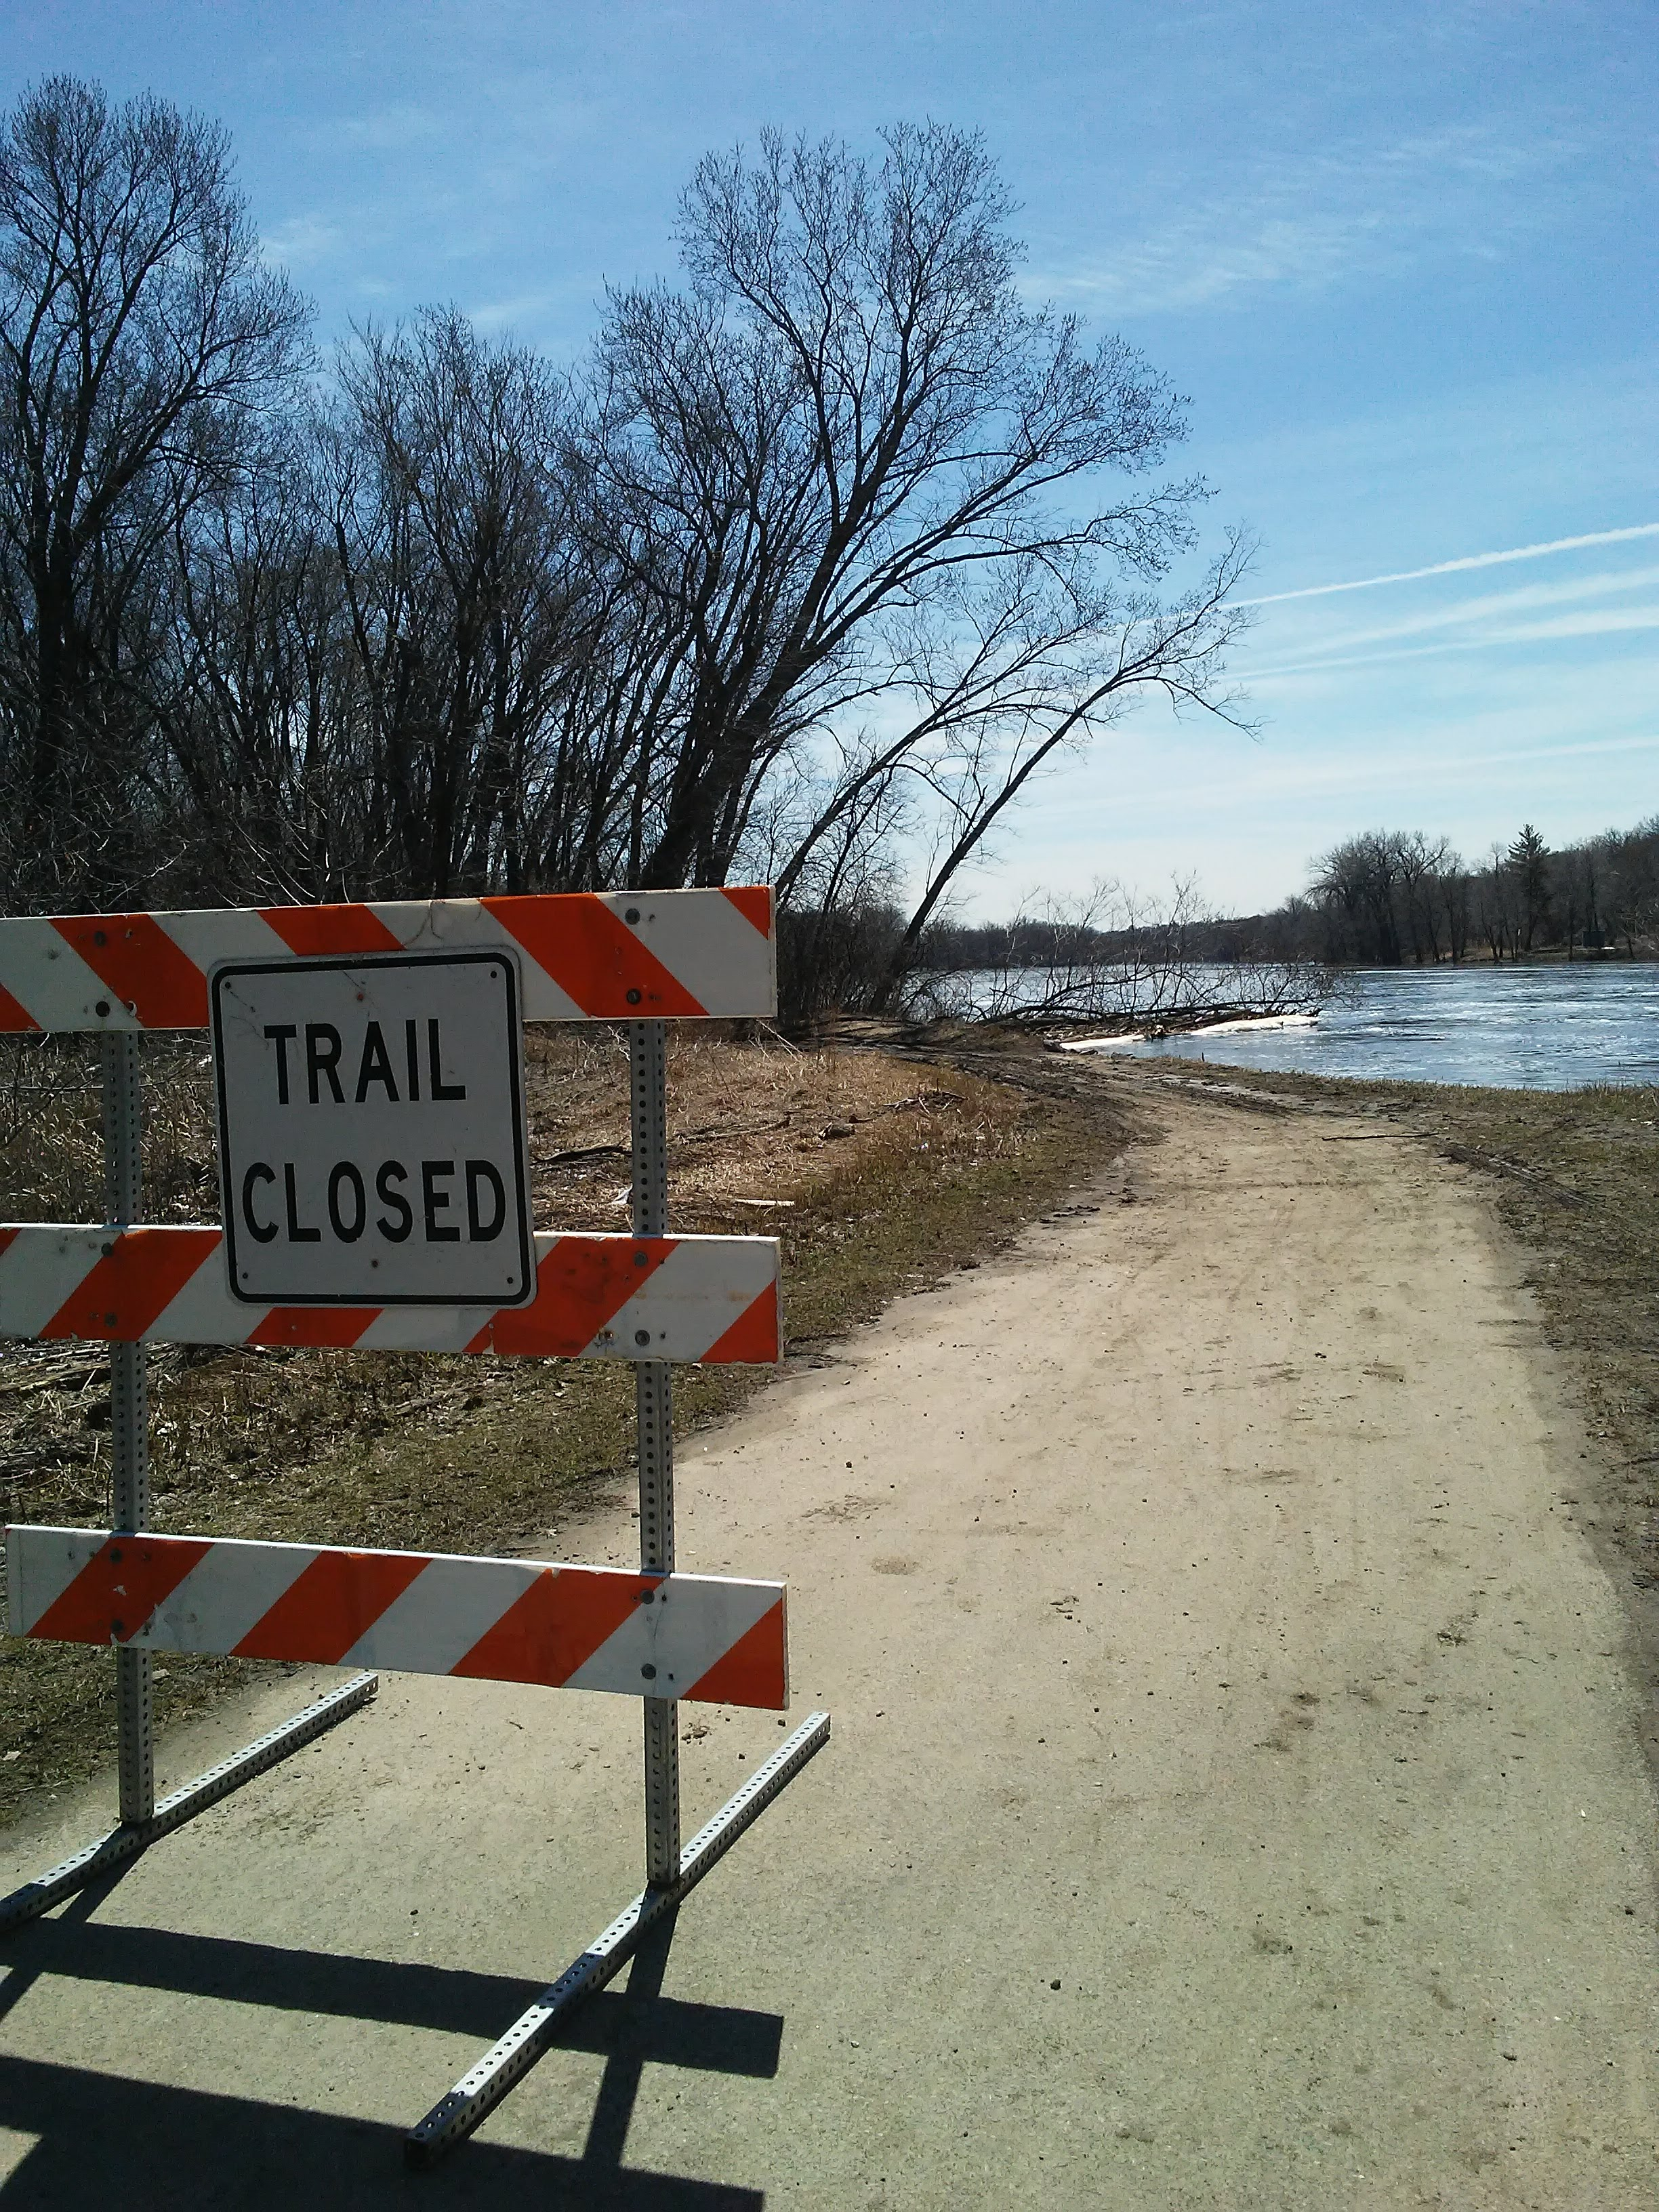 Trail closed sign and trail going to water